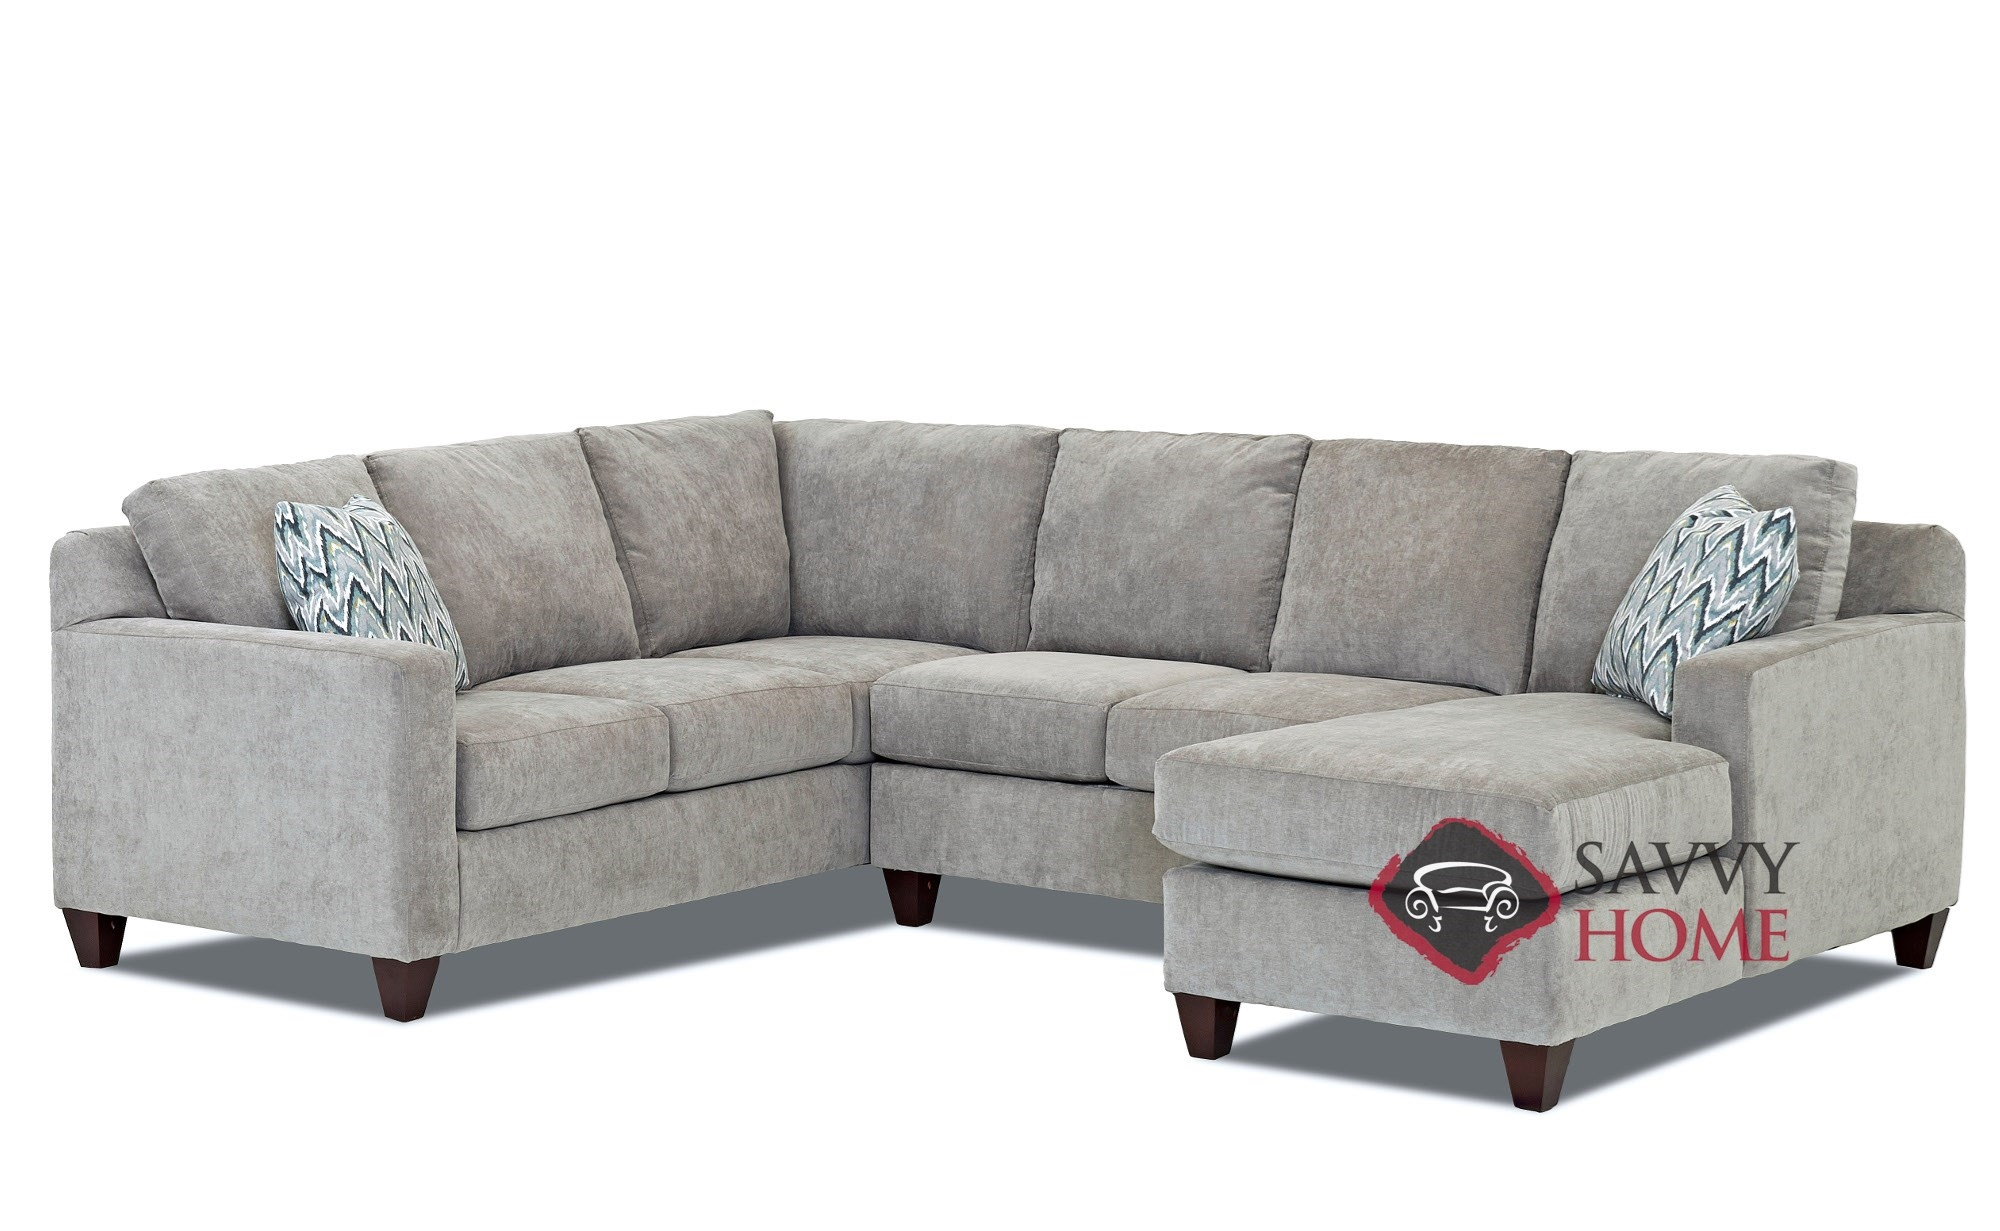 sofas u love burbank zero gravity sofa fabric stationary true sectional by savvy is fully